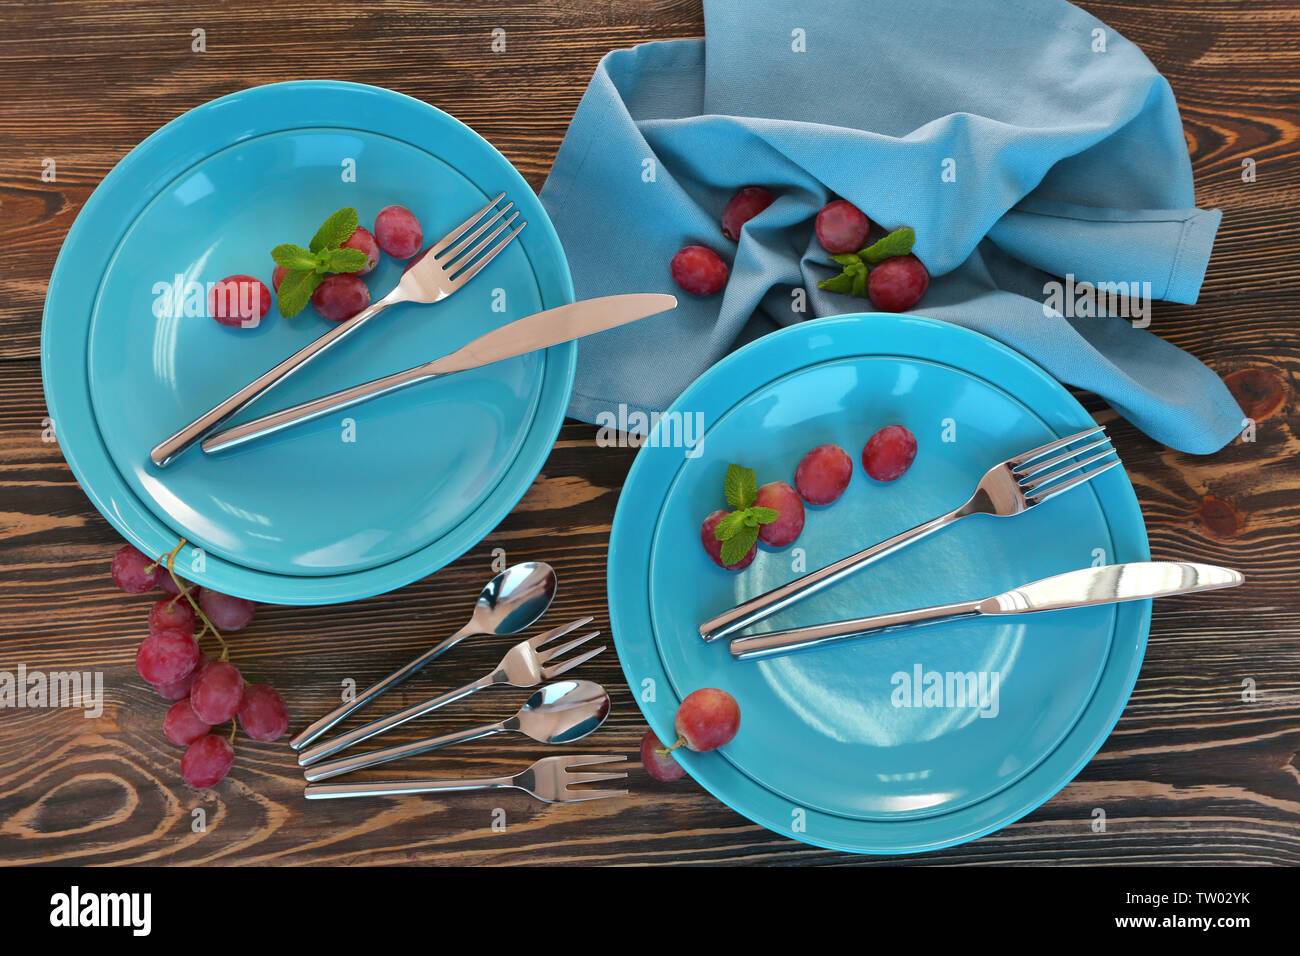 Blue plates and cutlery on wooden background - Stock Image